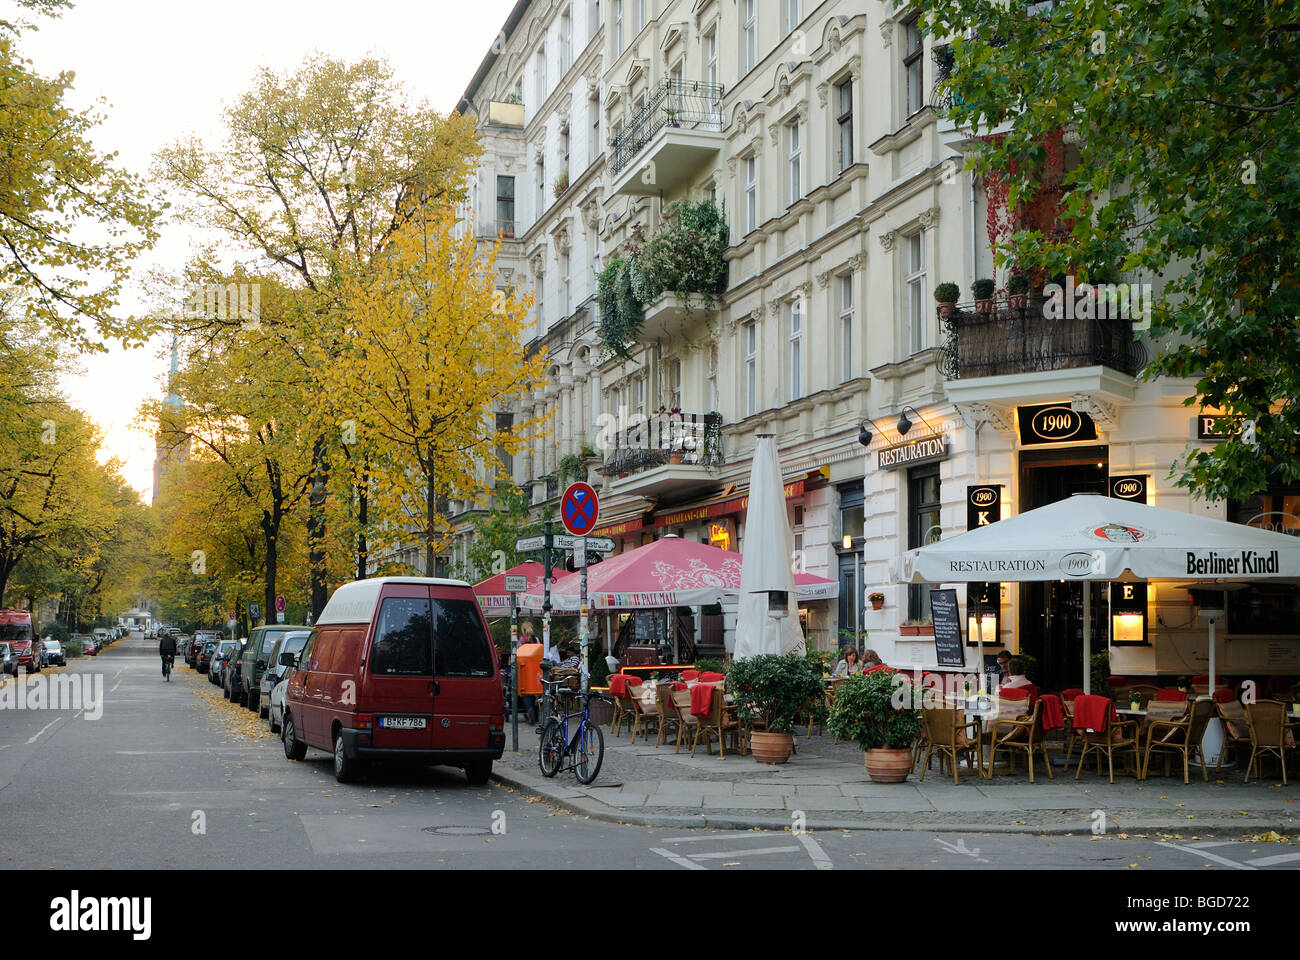 restaurant restauration 1900 at kollwitzplatz prenzlauer berg stock photo royalty free image. Black Bedroom Furniture Sets. Home Design Ideas